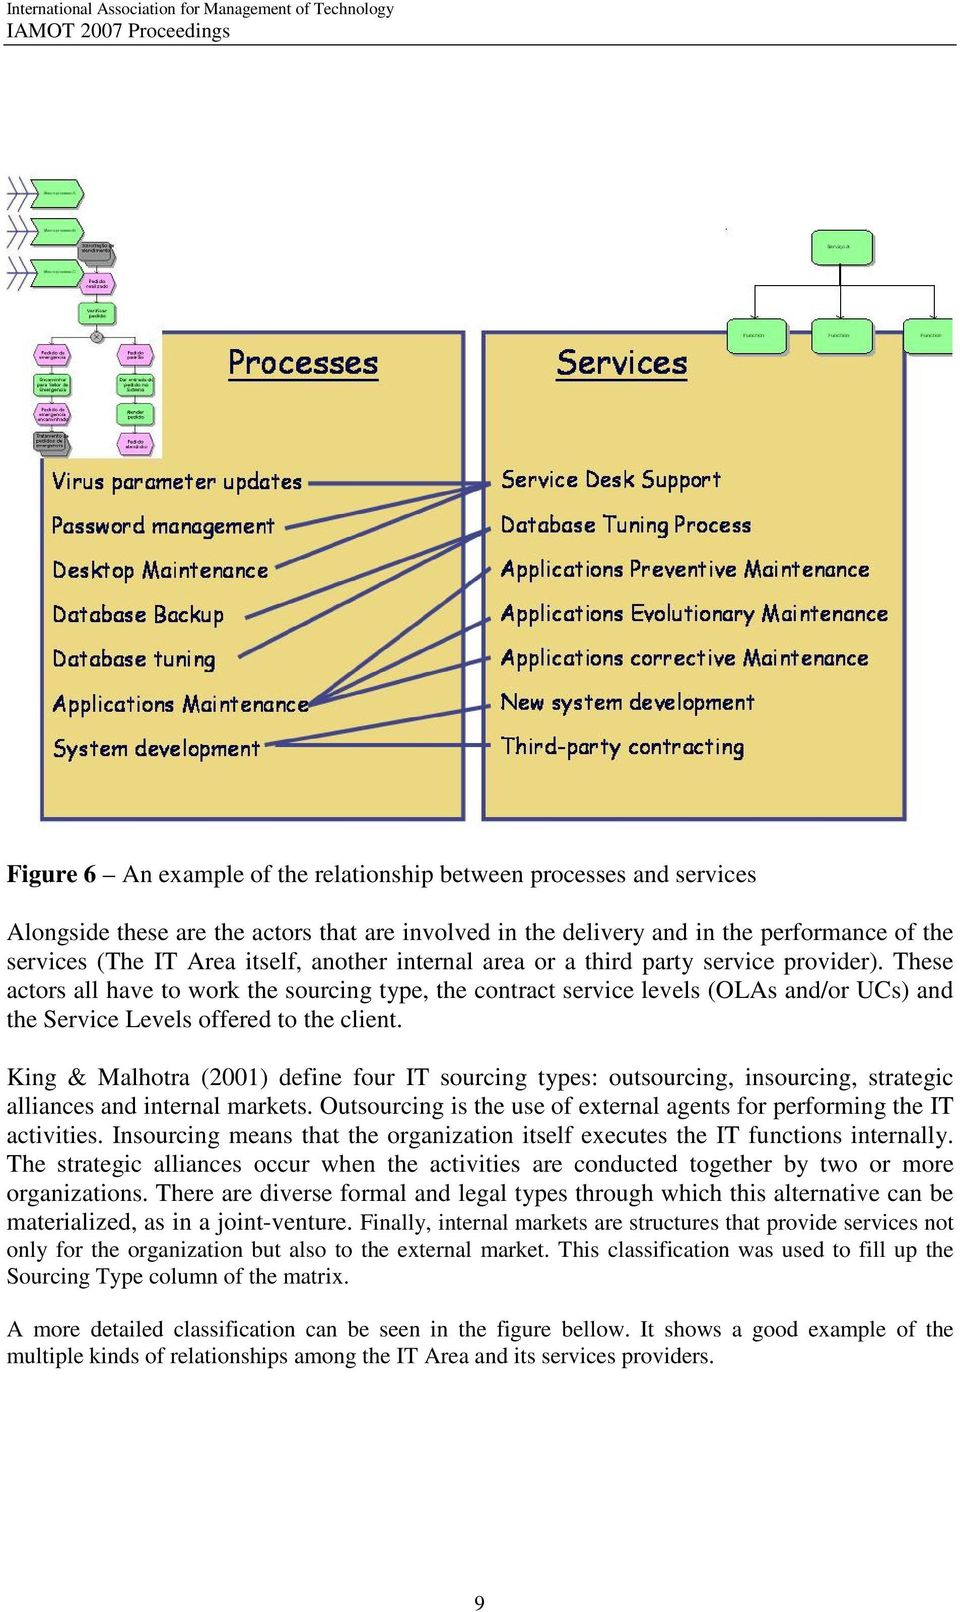 King & Malhotra (2001) define four IT sourcing types: outsourcing, insourcing, strategic alliances and internal markets. Outsourcing is the use of external agents for performing the IT activities.